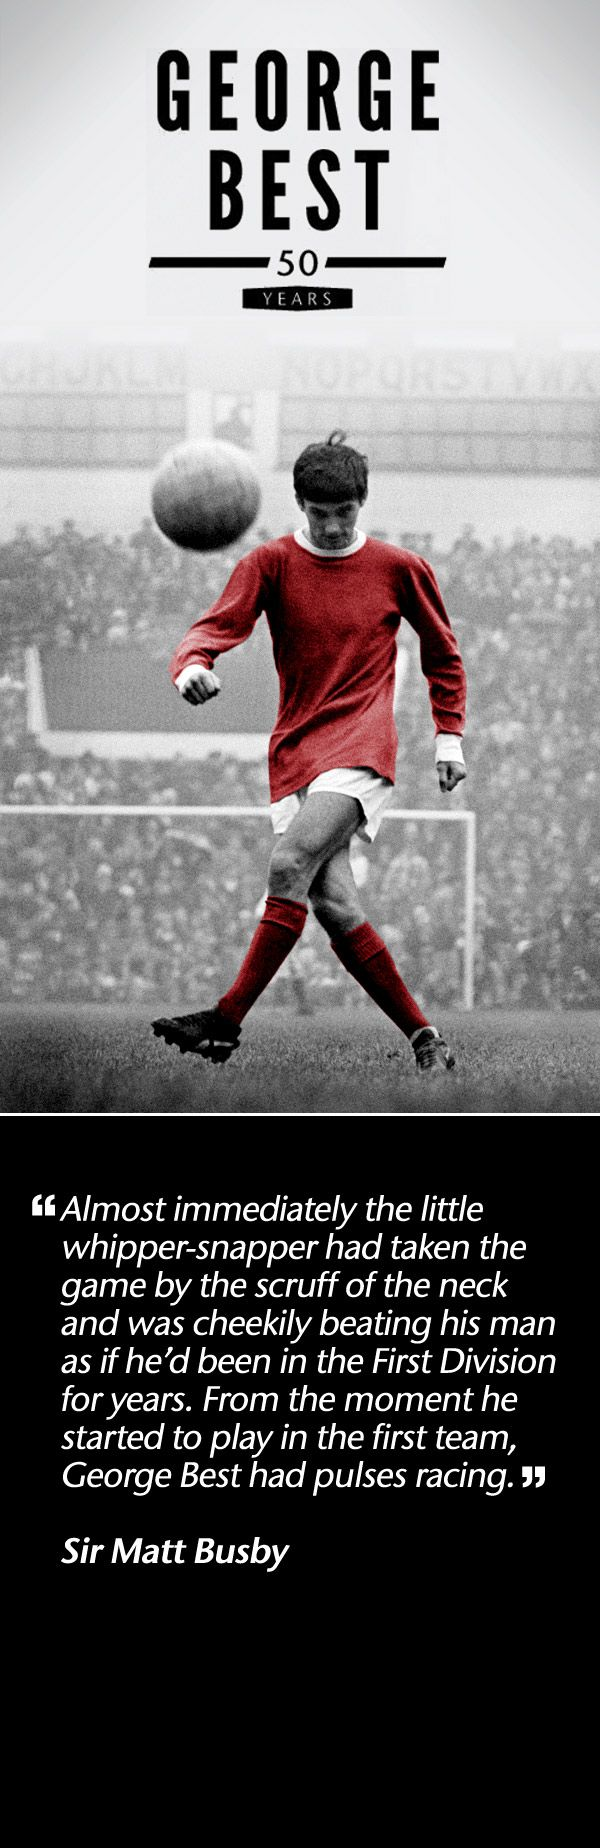 ManUtd.com marks 50 years since George Best made his Manchester United debut, beginning with a look back at his first season with the Old Trafford club.